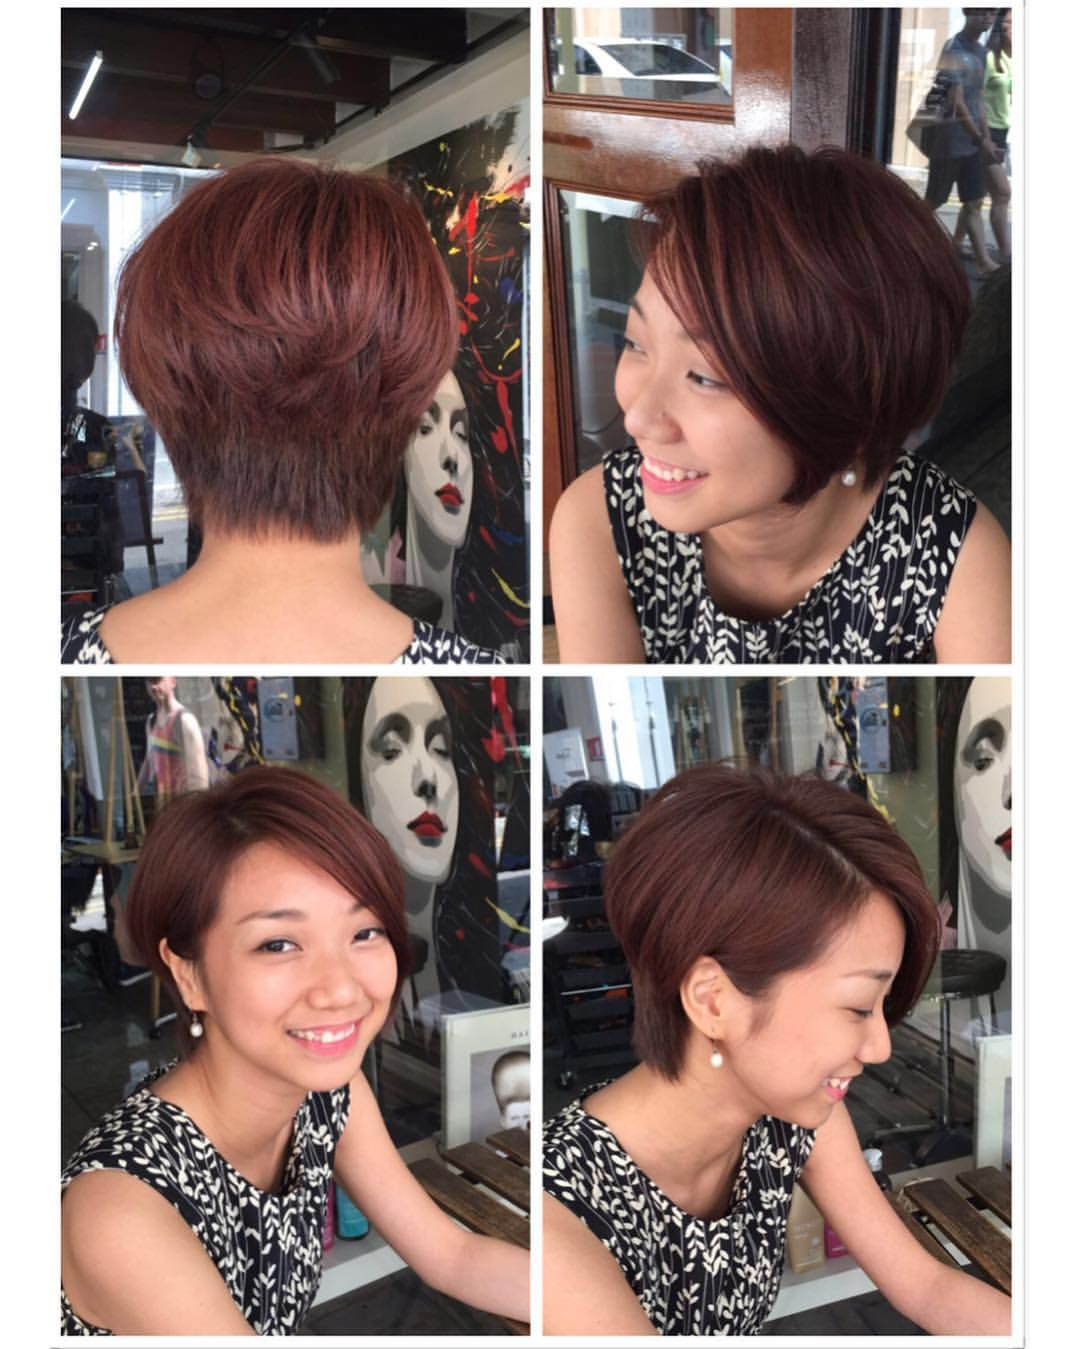 Hair Style With Volume by stevesalt.us